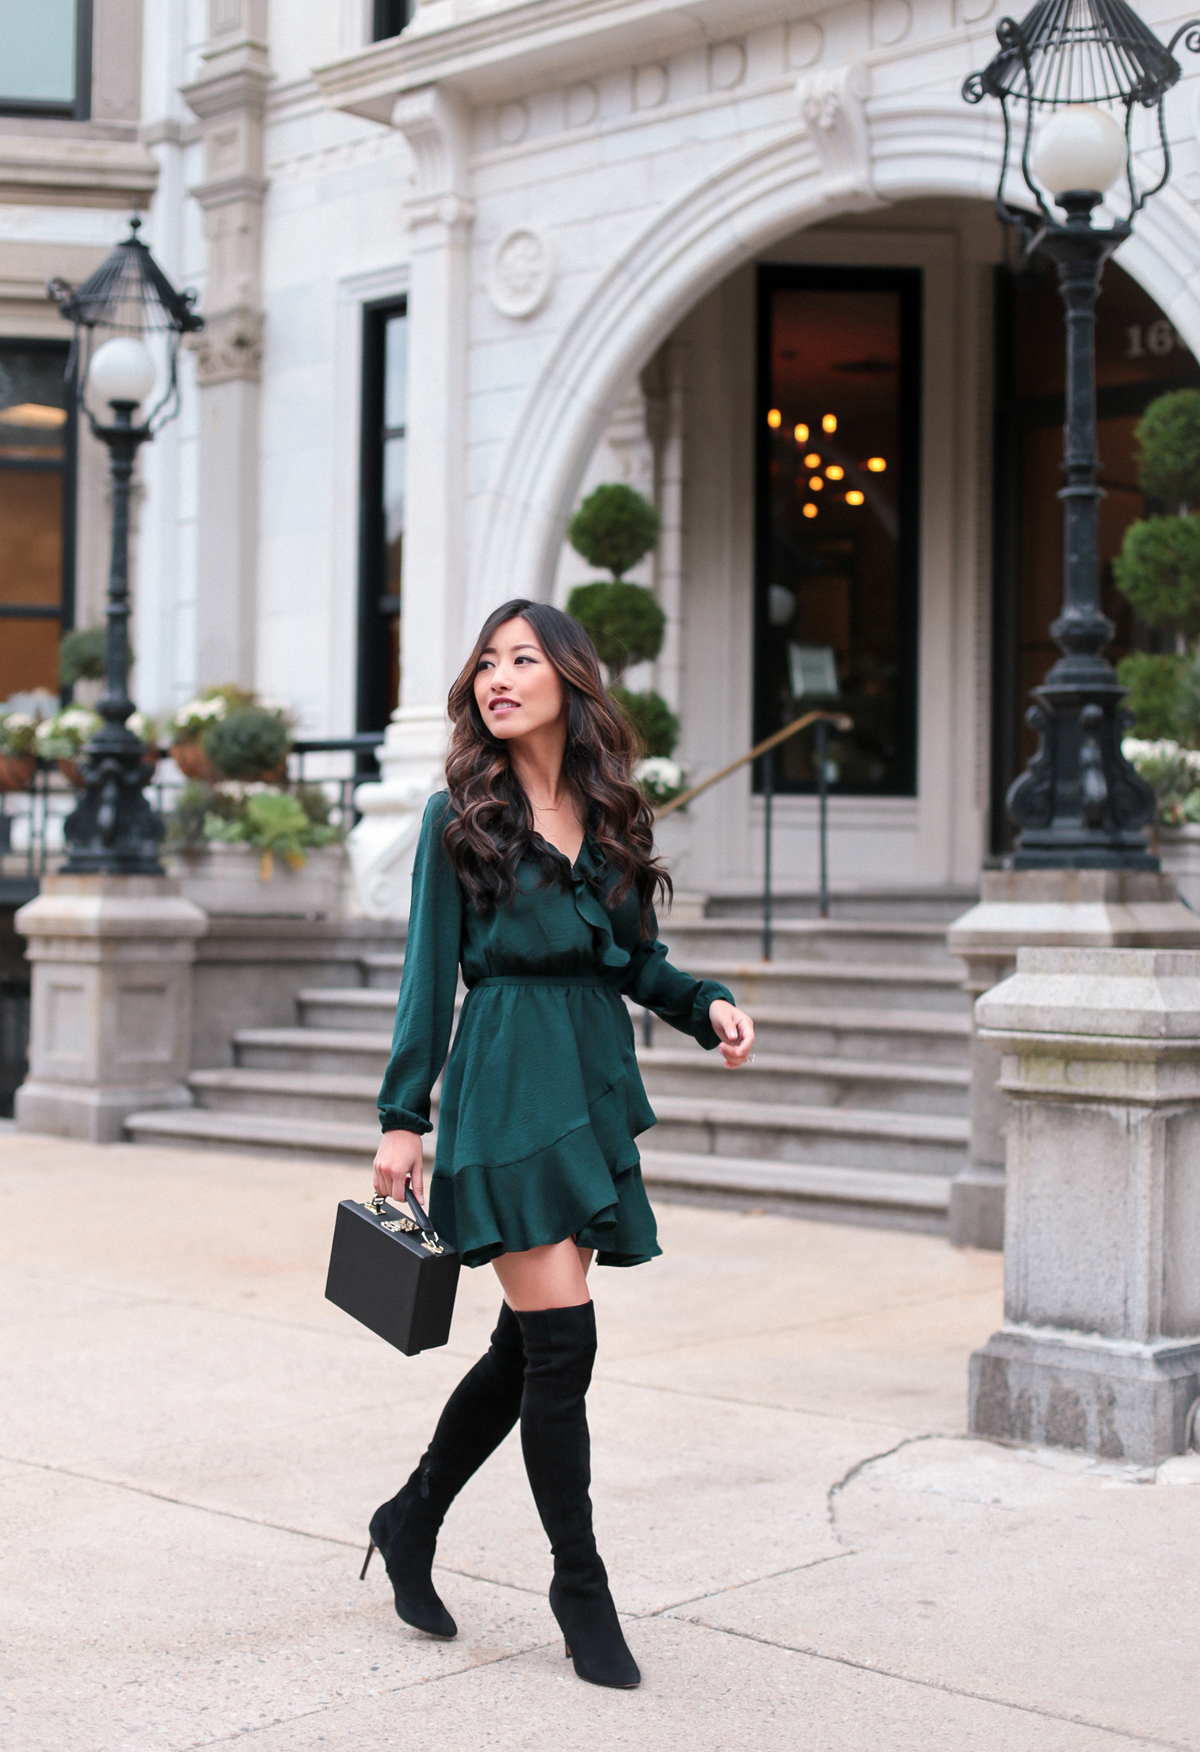 Fashion Blog By Carla: Fall Date Night / Holiday Party Dress